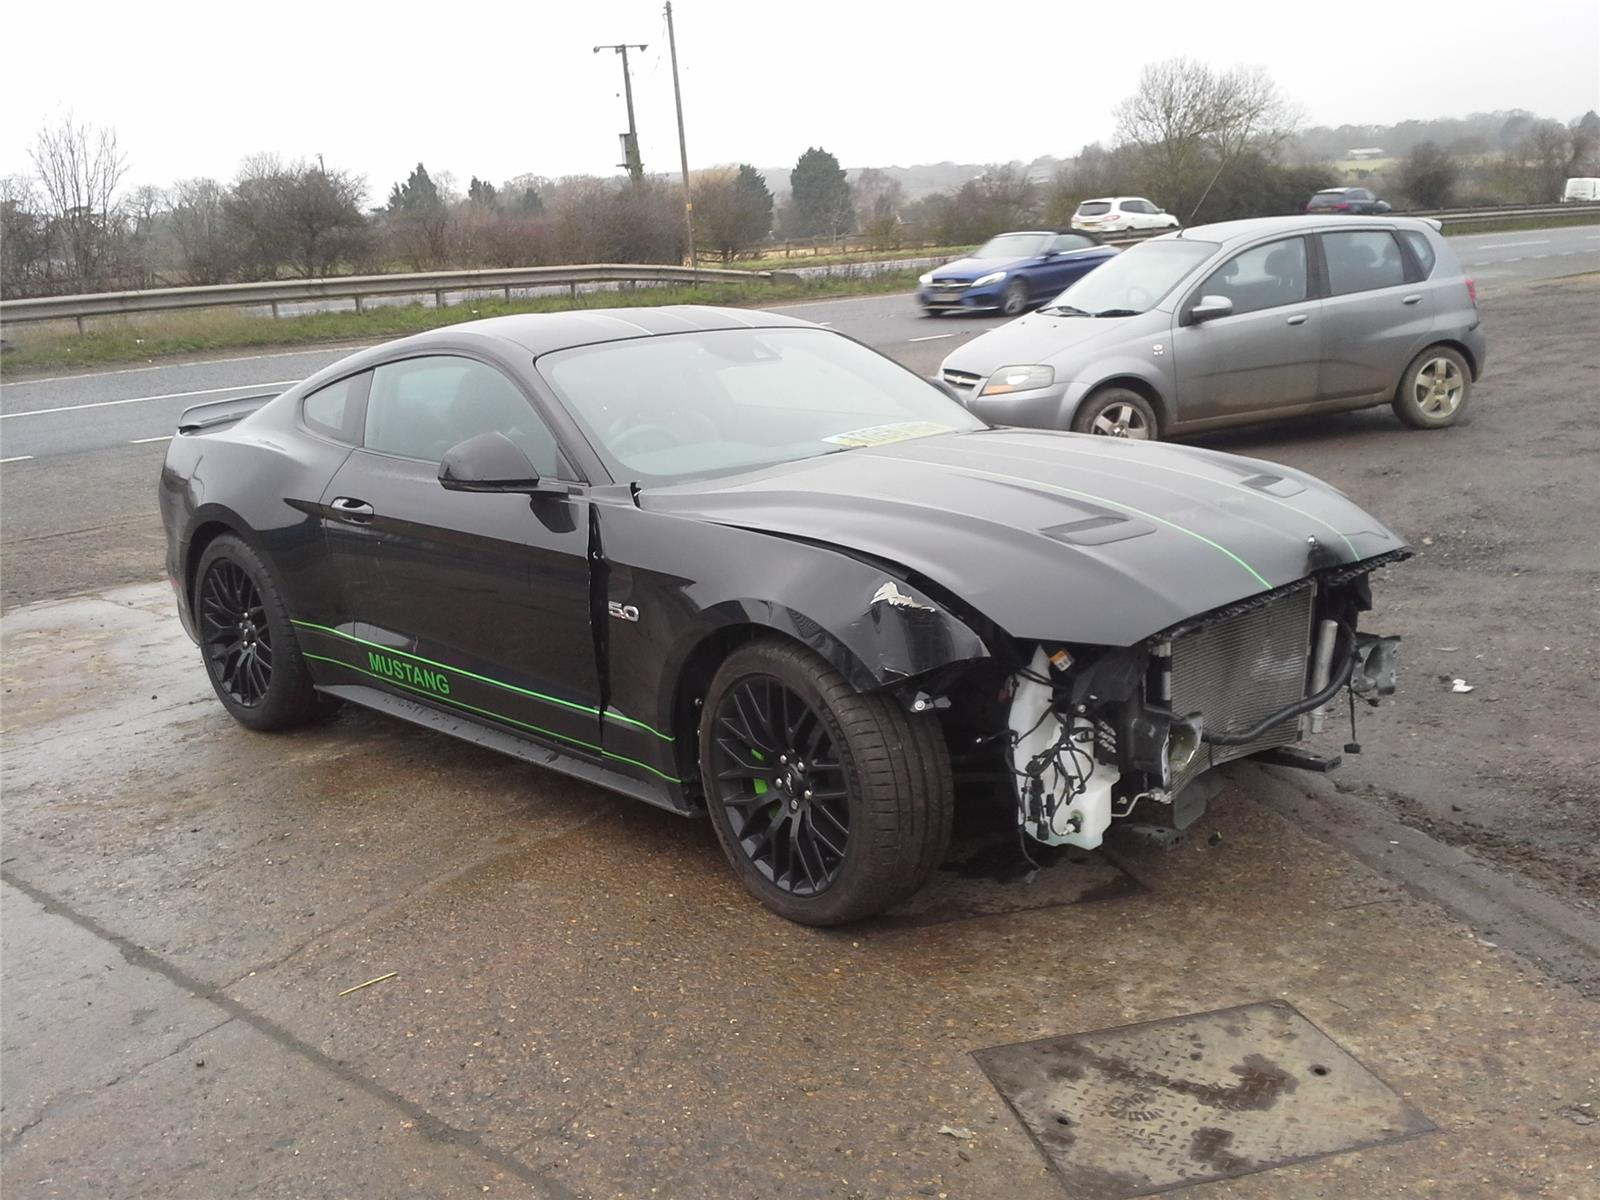 2019 FORD MUSTANG GT 4951cc PETROL AUTOMATIC 10 Speed 2 DOOR COUPE